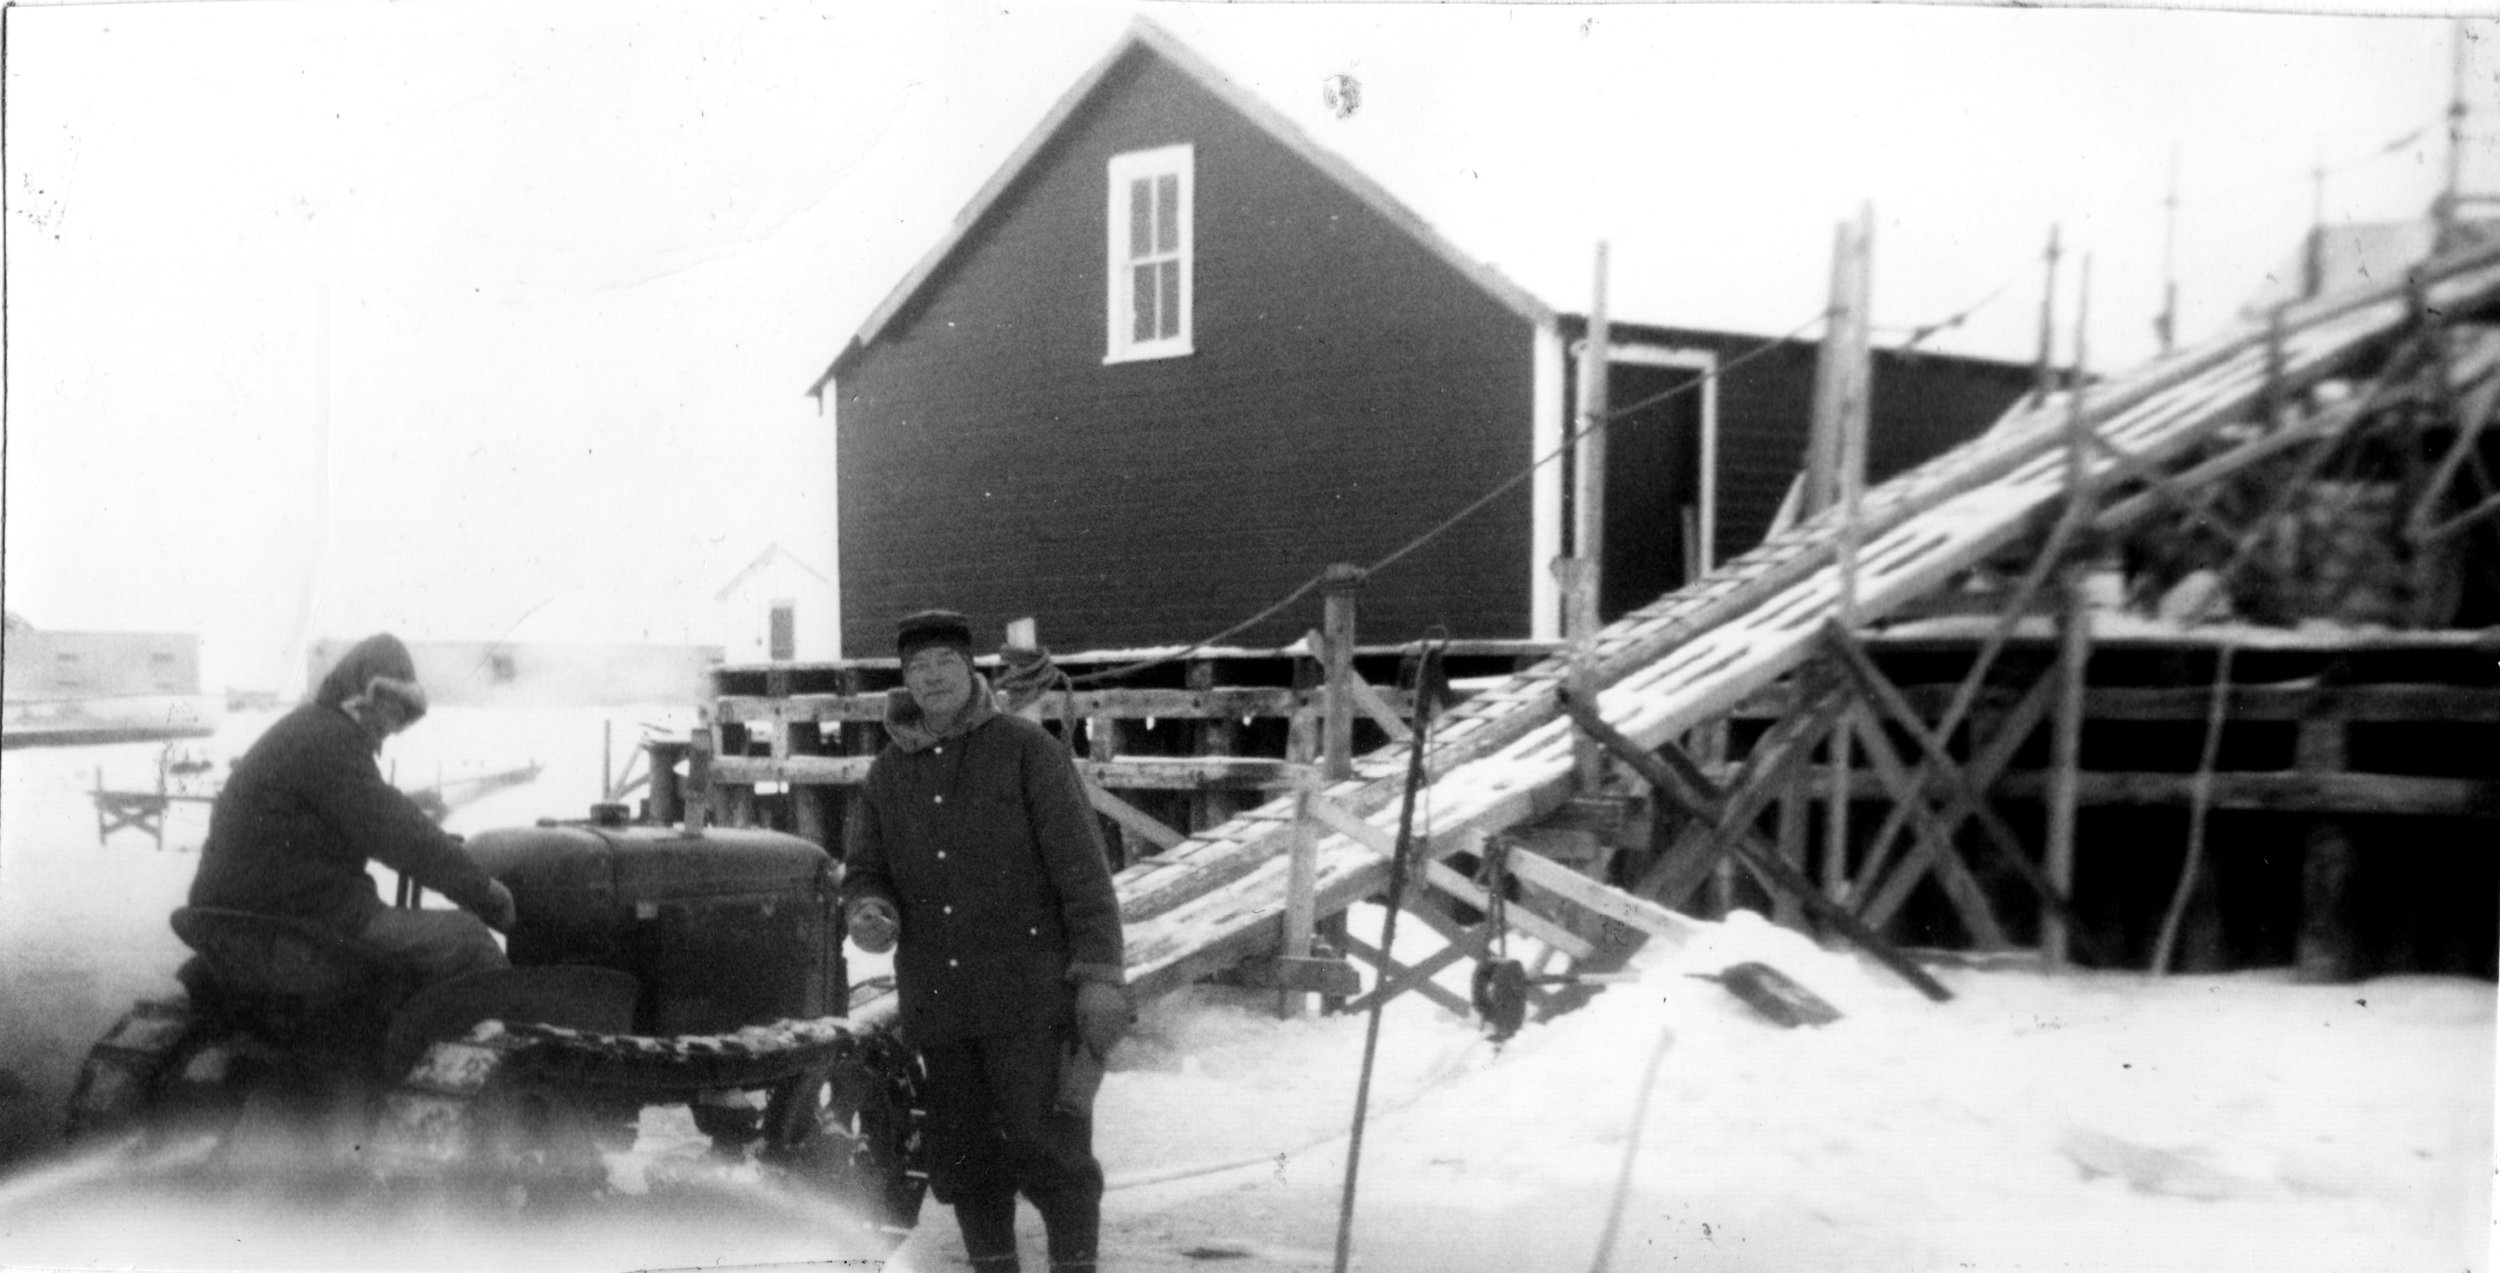 1961 - Gimli Saga 686B 01 - putting up ice.jpg